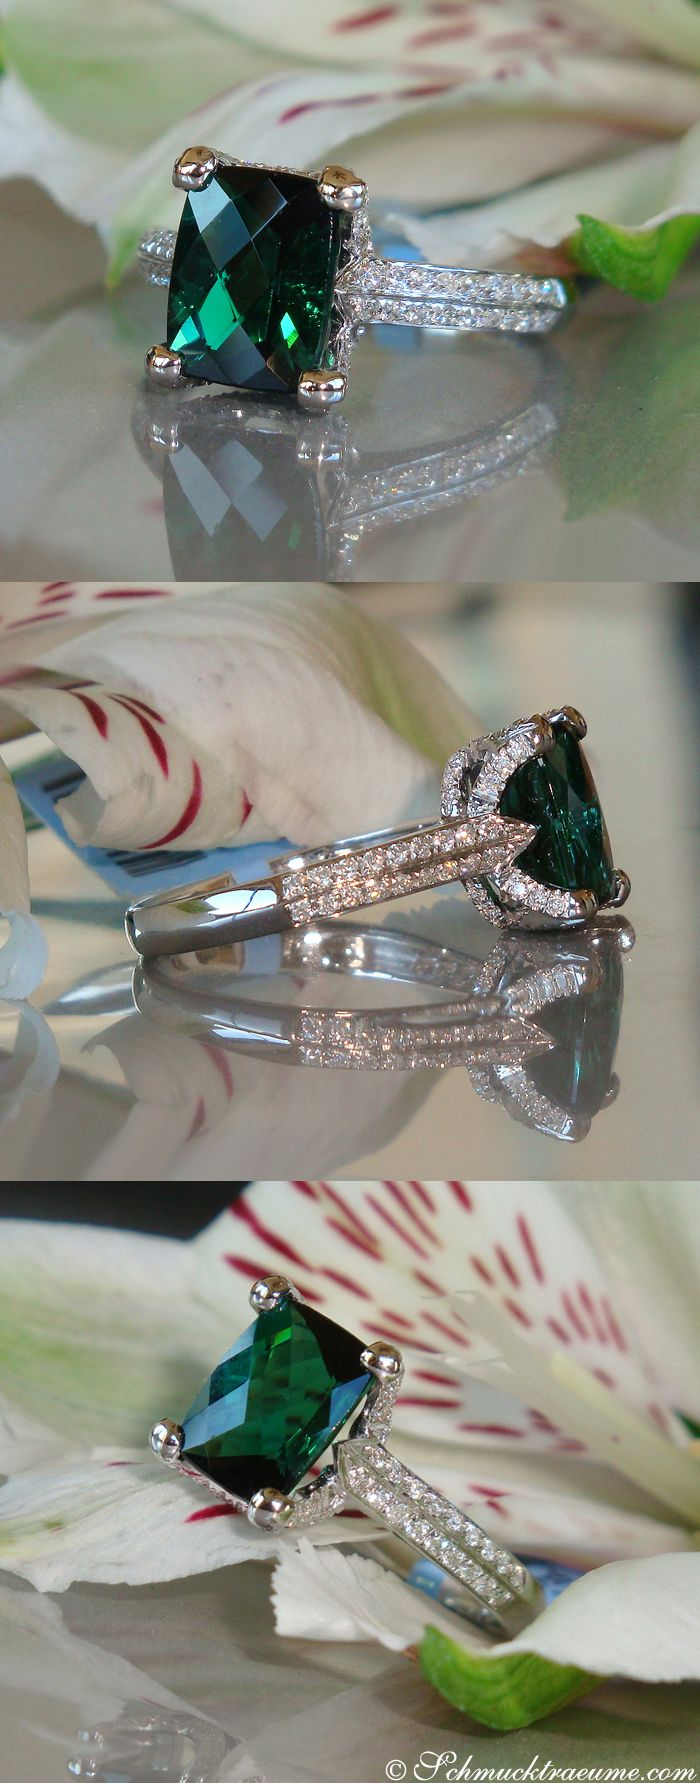 Delicate Green Tourmaline Ring with Diamonds (3.10 ct.) in Whitegold 18k - schmucktraeume.com Like: https://www.facebook.com/Noble-Juwelen-150871984924926/